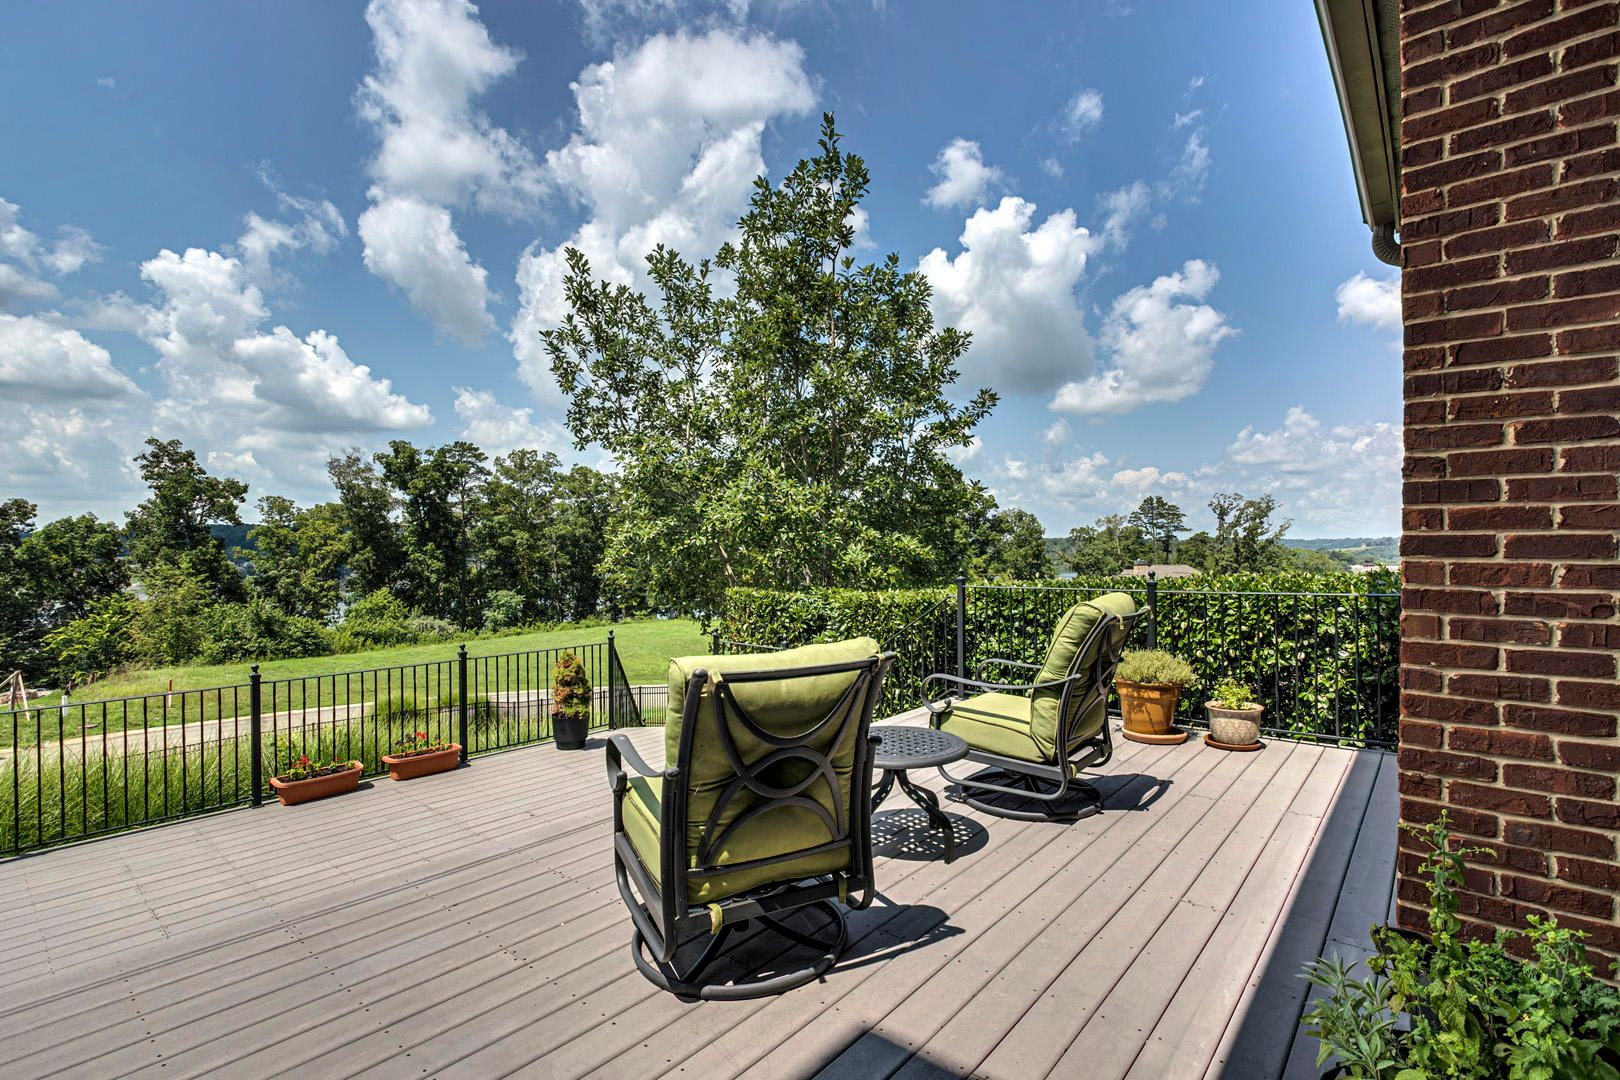 35_SouthernWay_438_Deck01